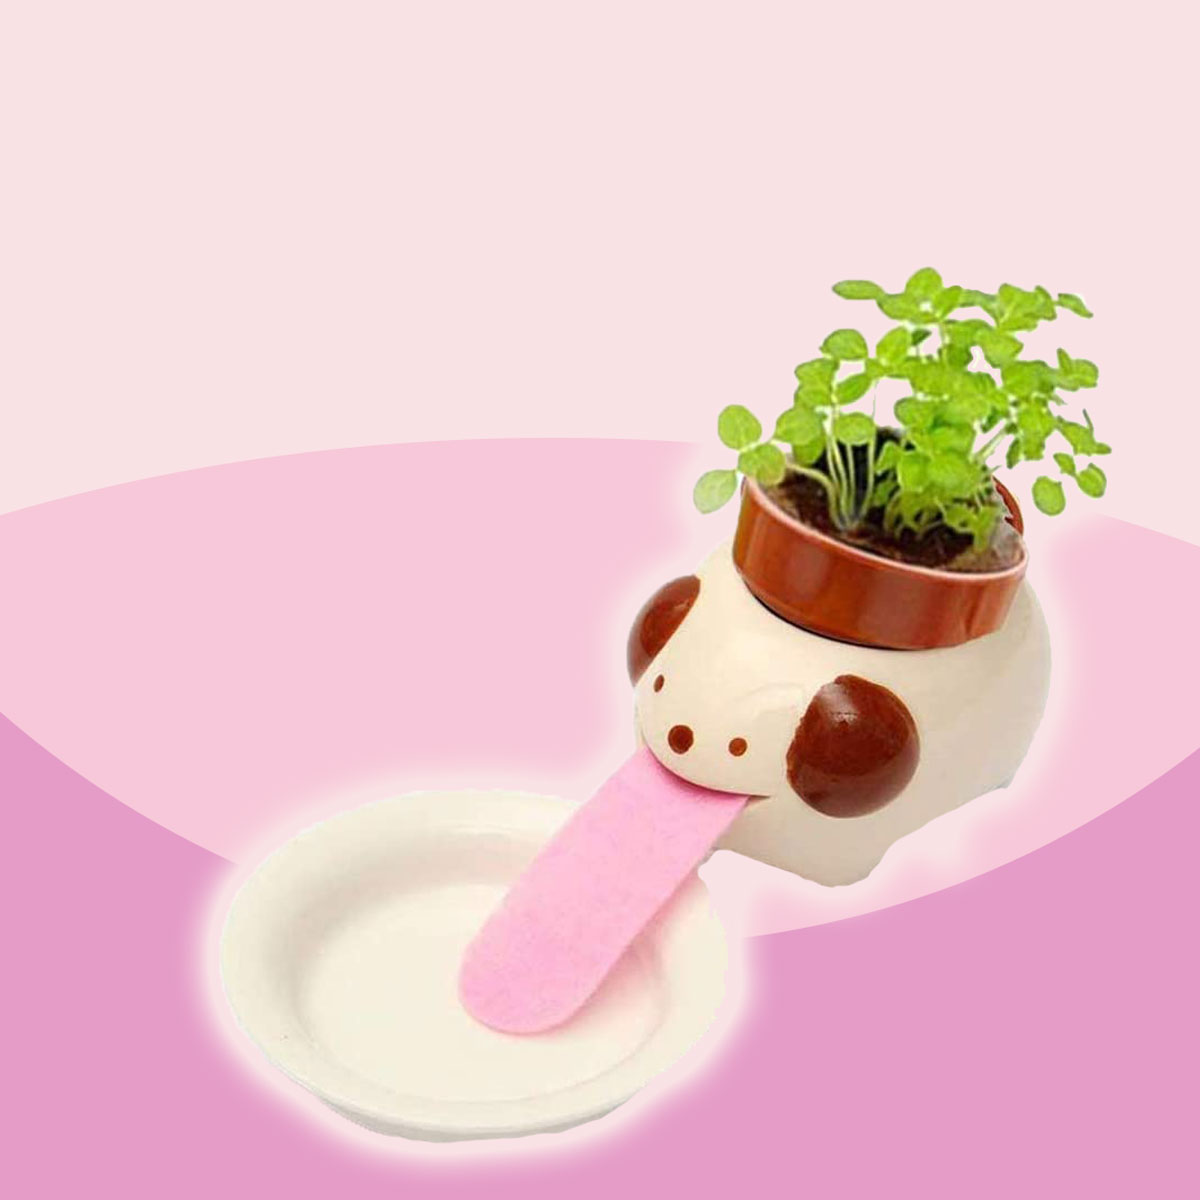 These Self-Watering Planters Might Be the Cutest Things I've Ever Seen